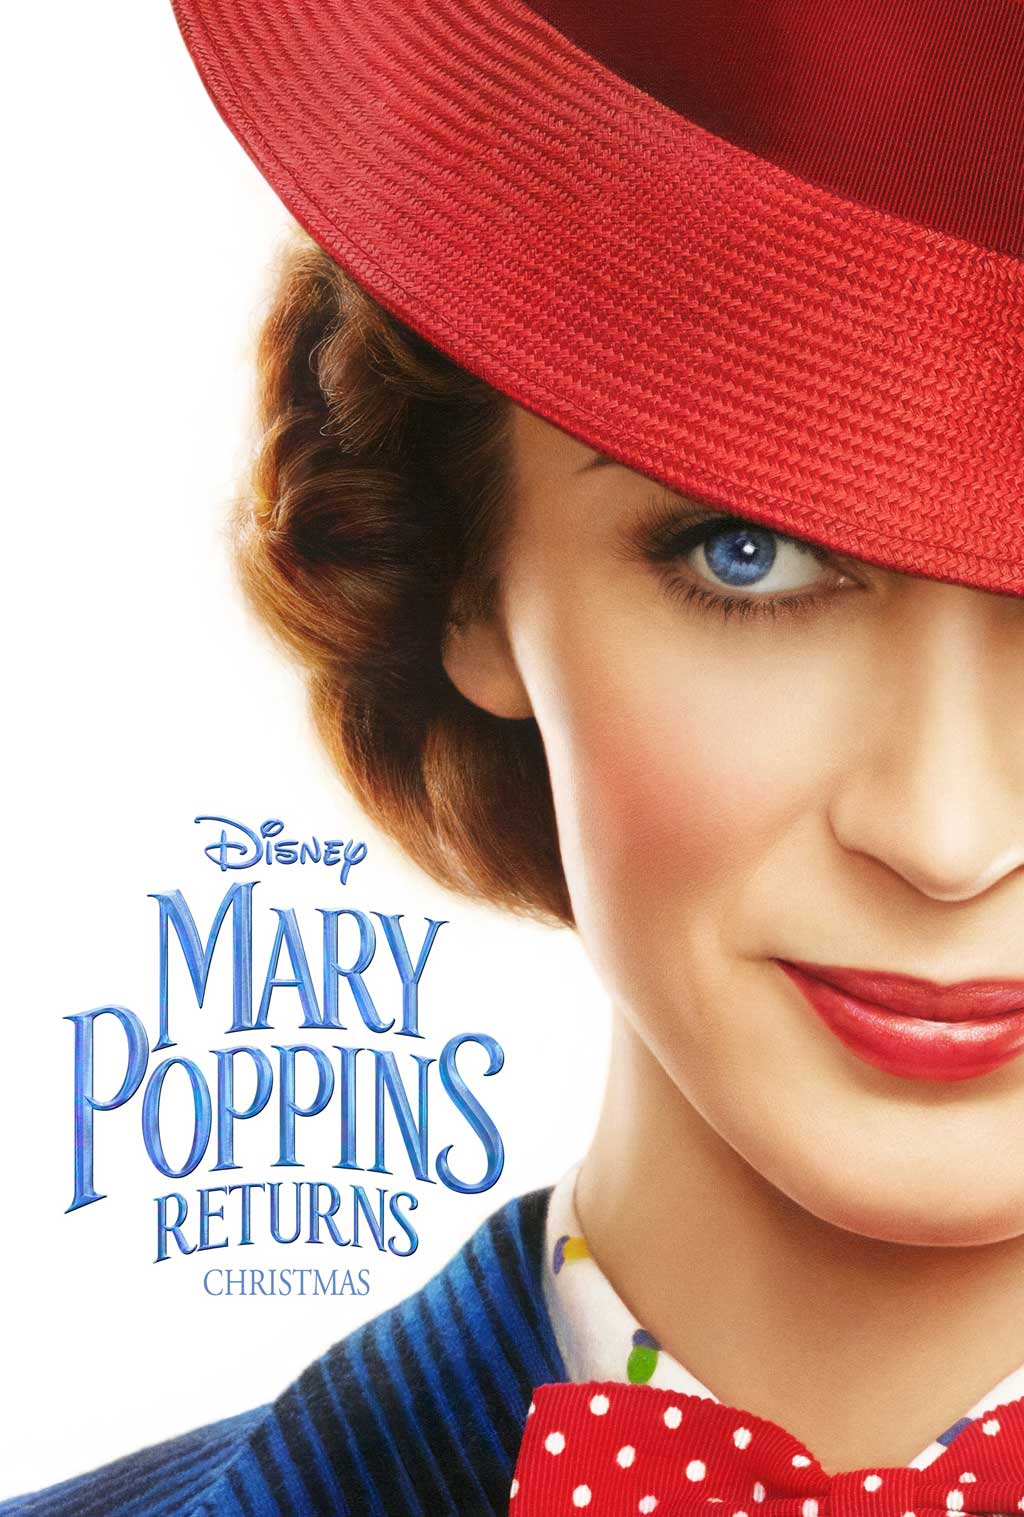 Mary Poppins Returns - Teaser Poster